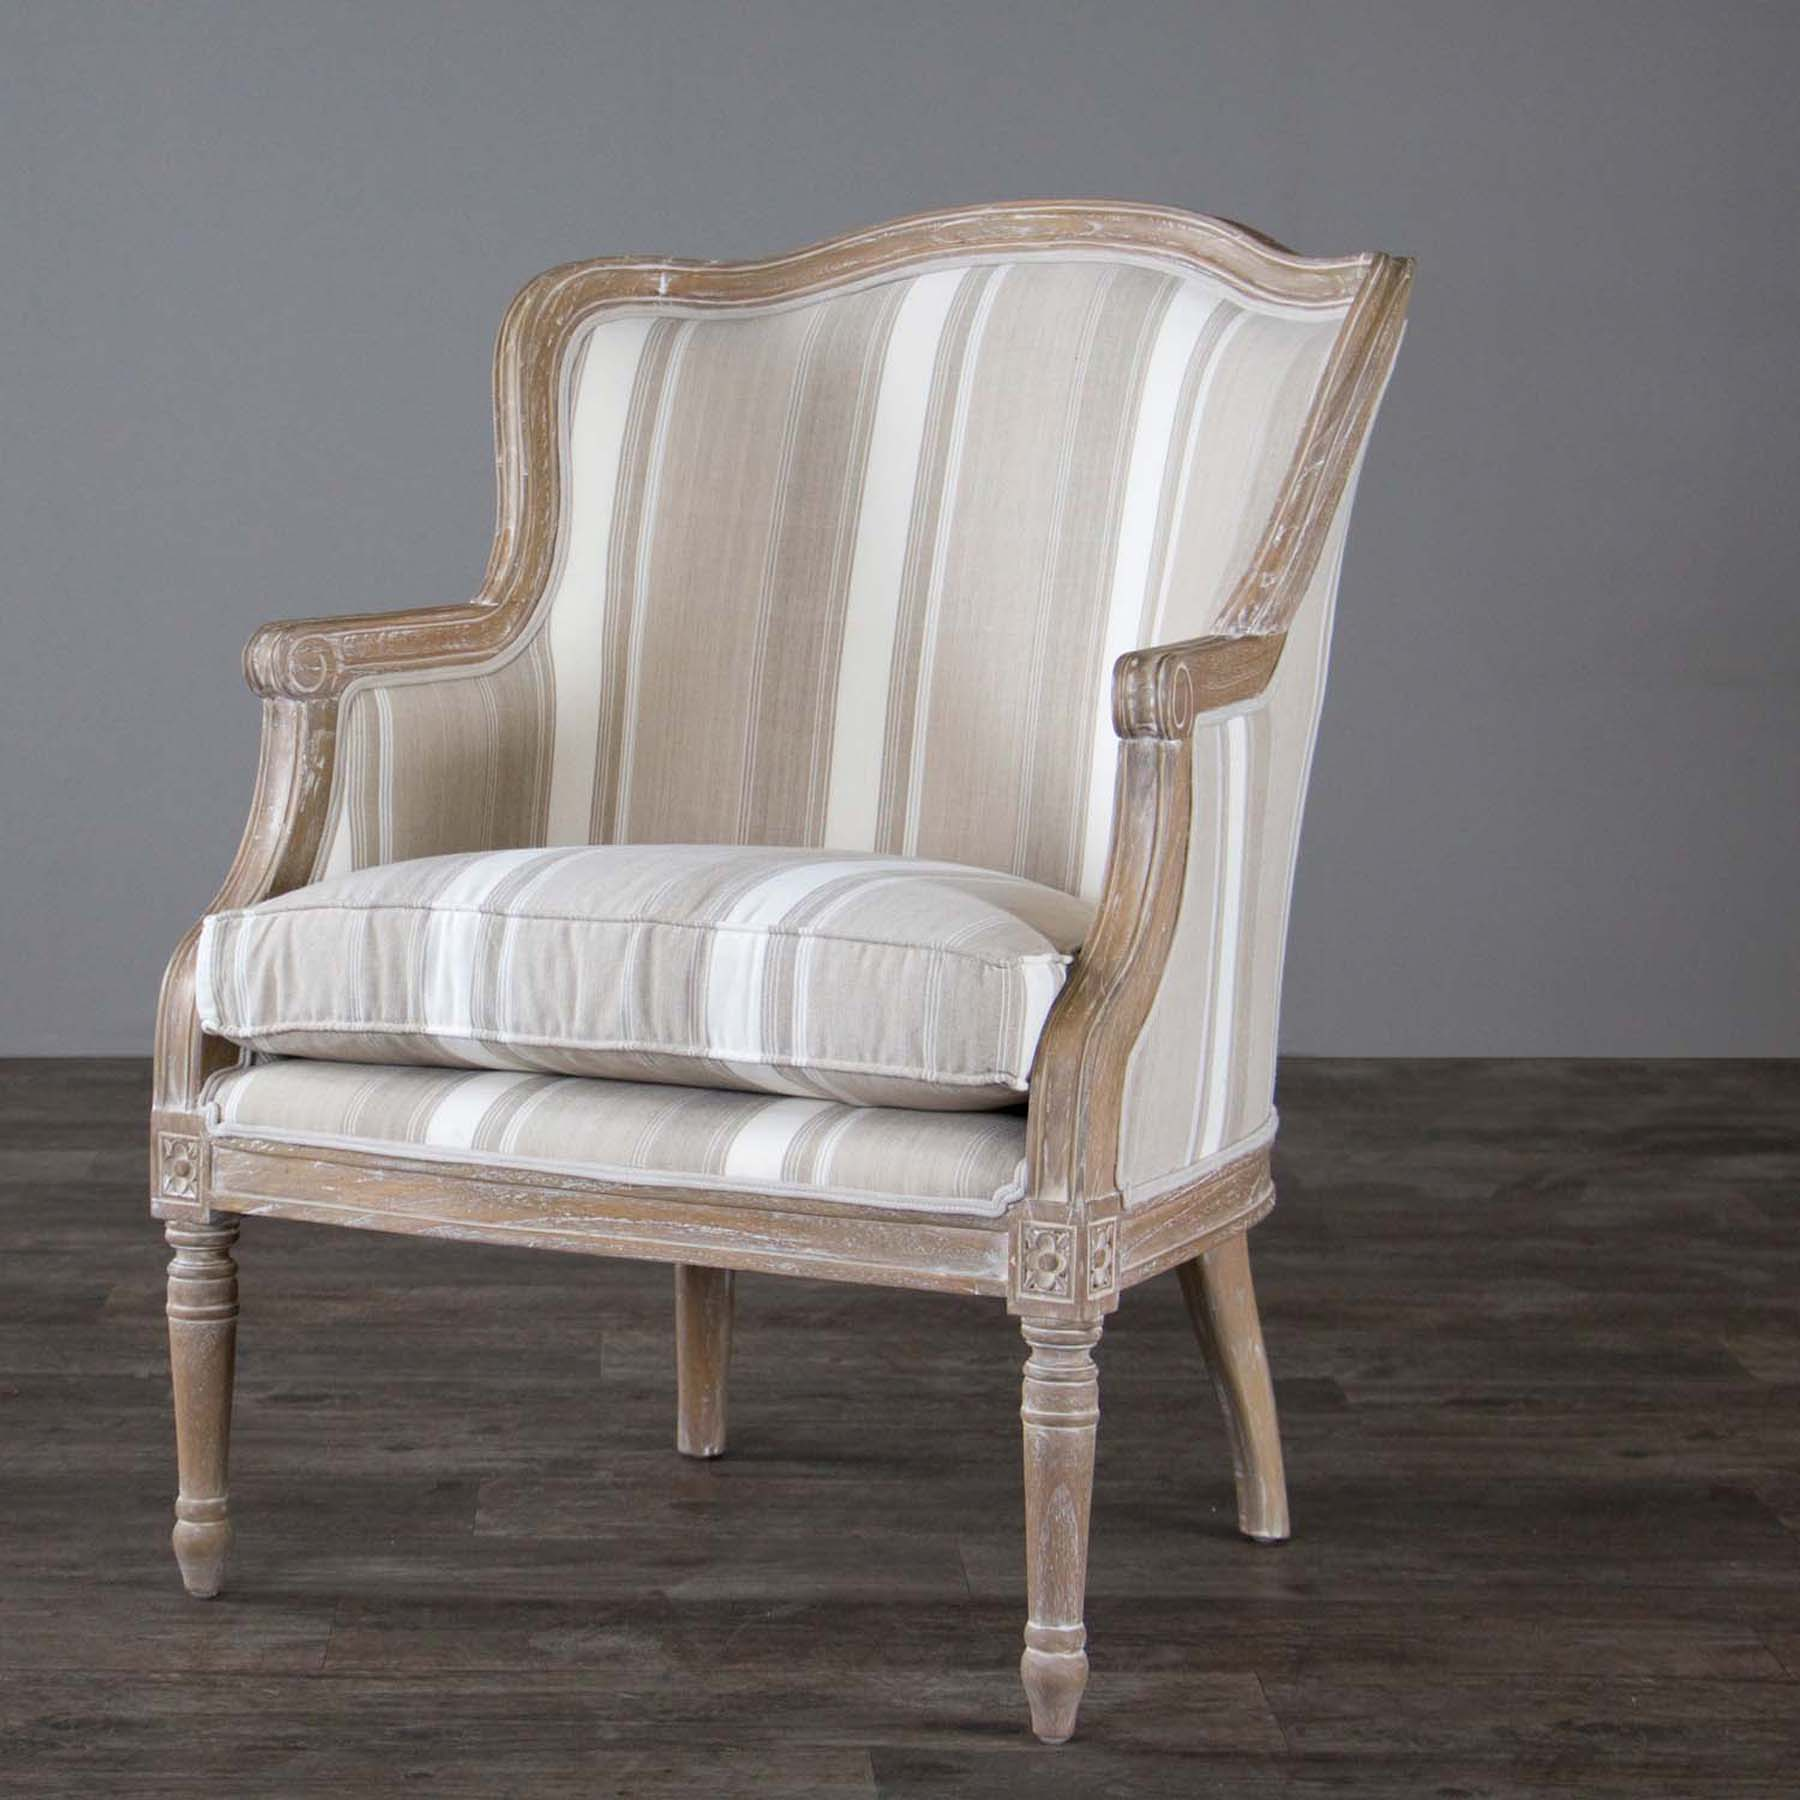 Studio Chairs Baxton Studio Charlemagne Traditional French Accent Chair